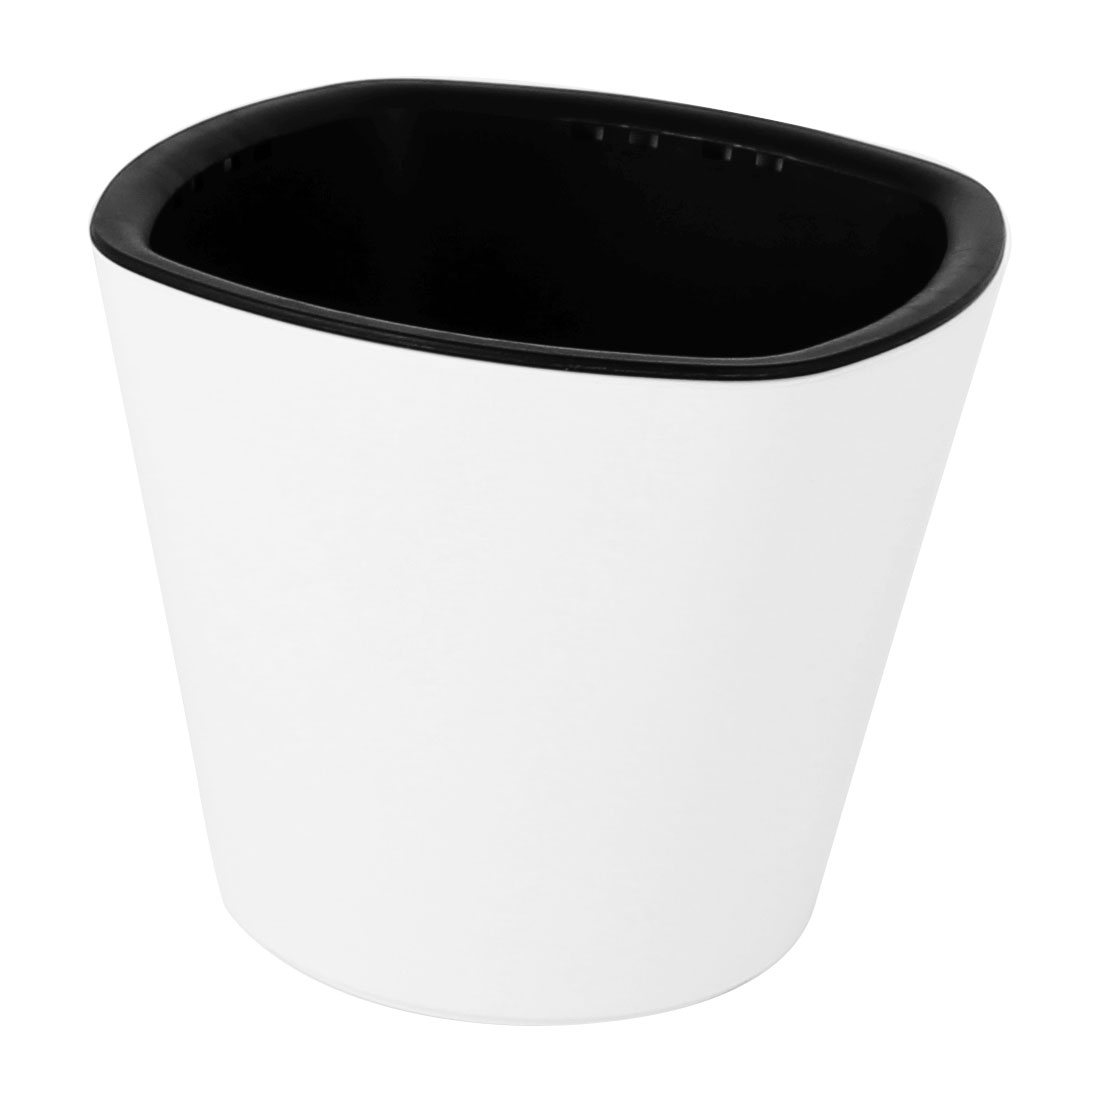 Flower Plant Plastic Self Watering Planter Flowerpot Container Pot White